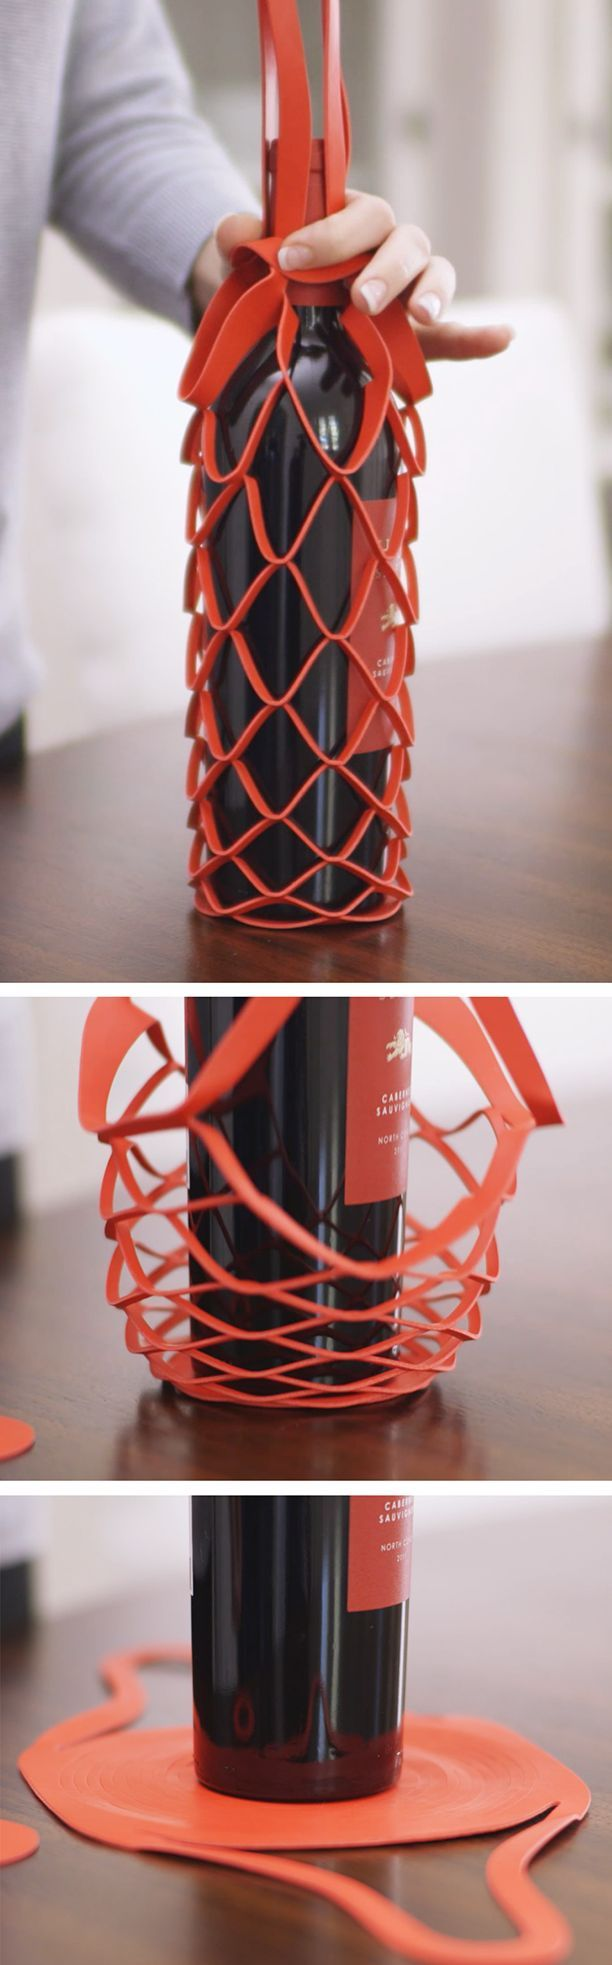 Bolsa extensible para botellas de vino #packaging #creatividad Expandable Wine Carrier